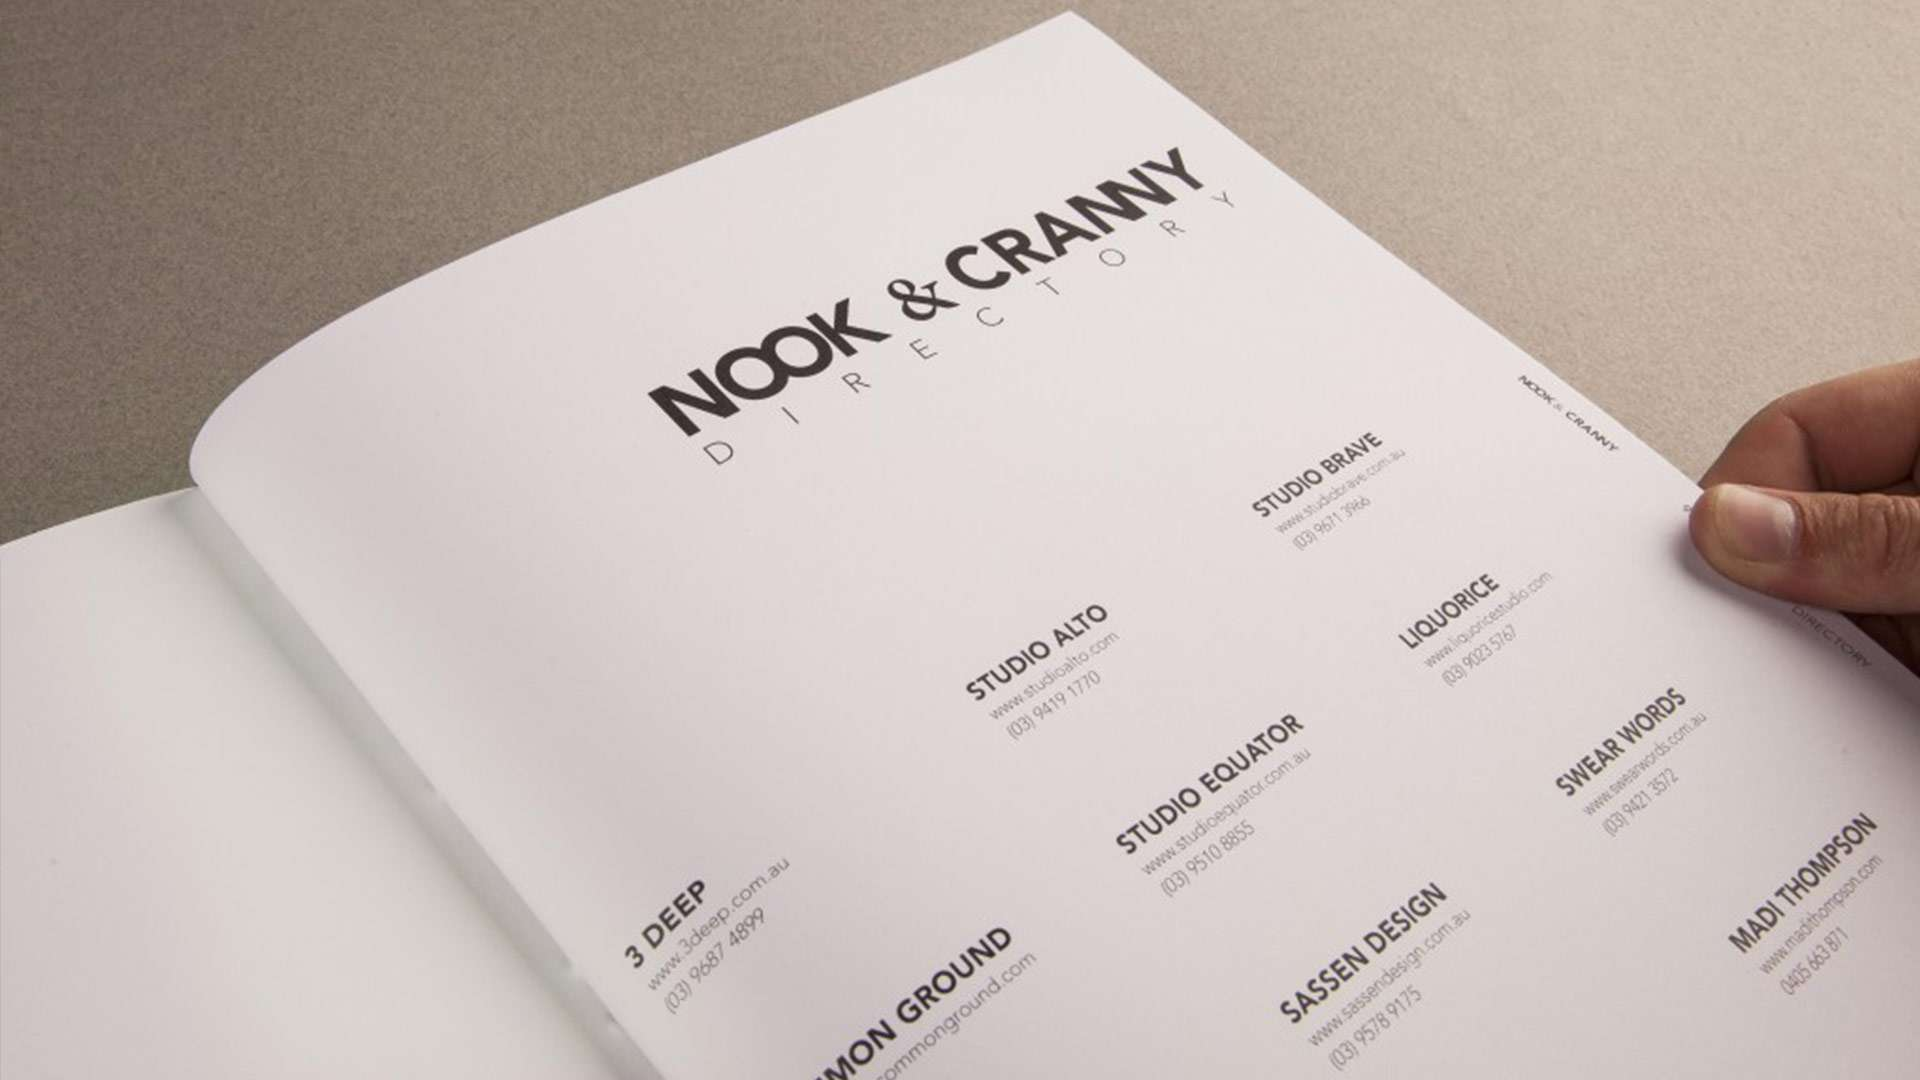 Oslo Norway's Nook & Cranny Magazine showcases 11 of the best creative design studios in Melbourne including Studio Equator